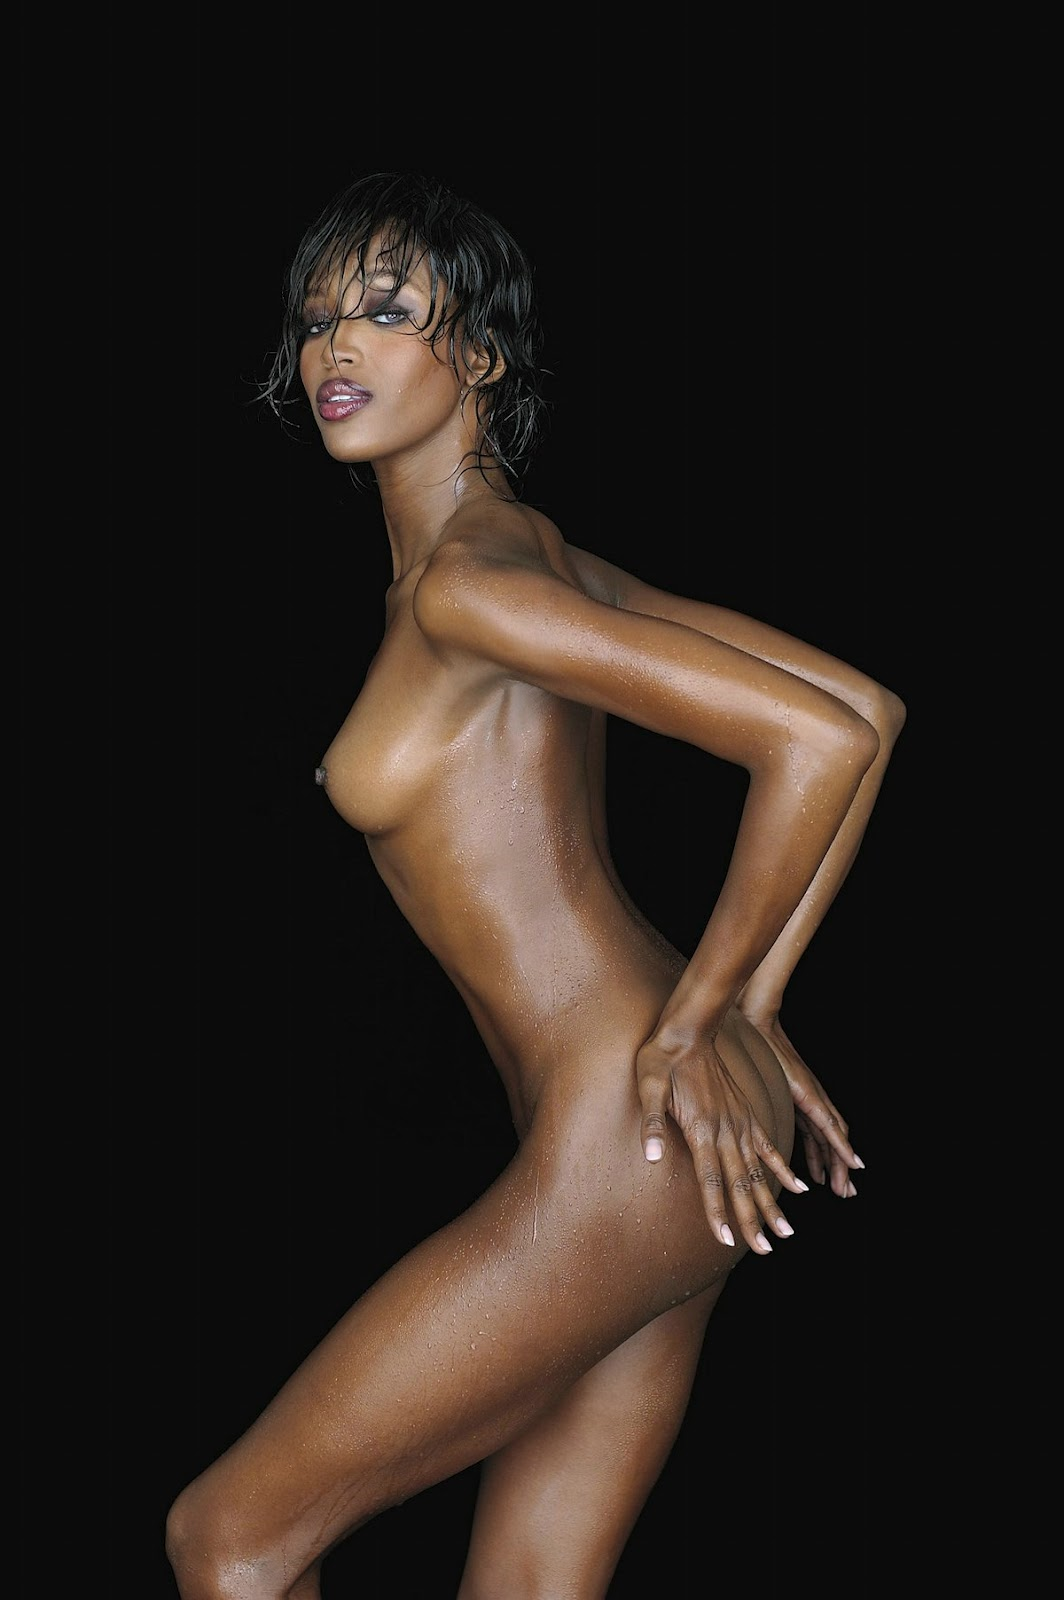 Look for naomi campbell nude fakes this